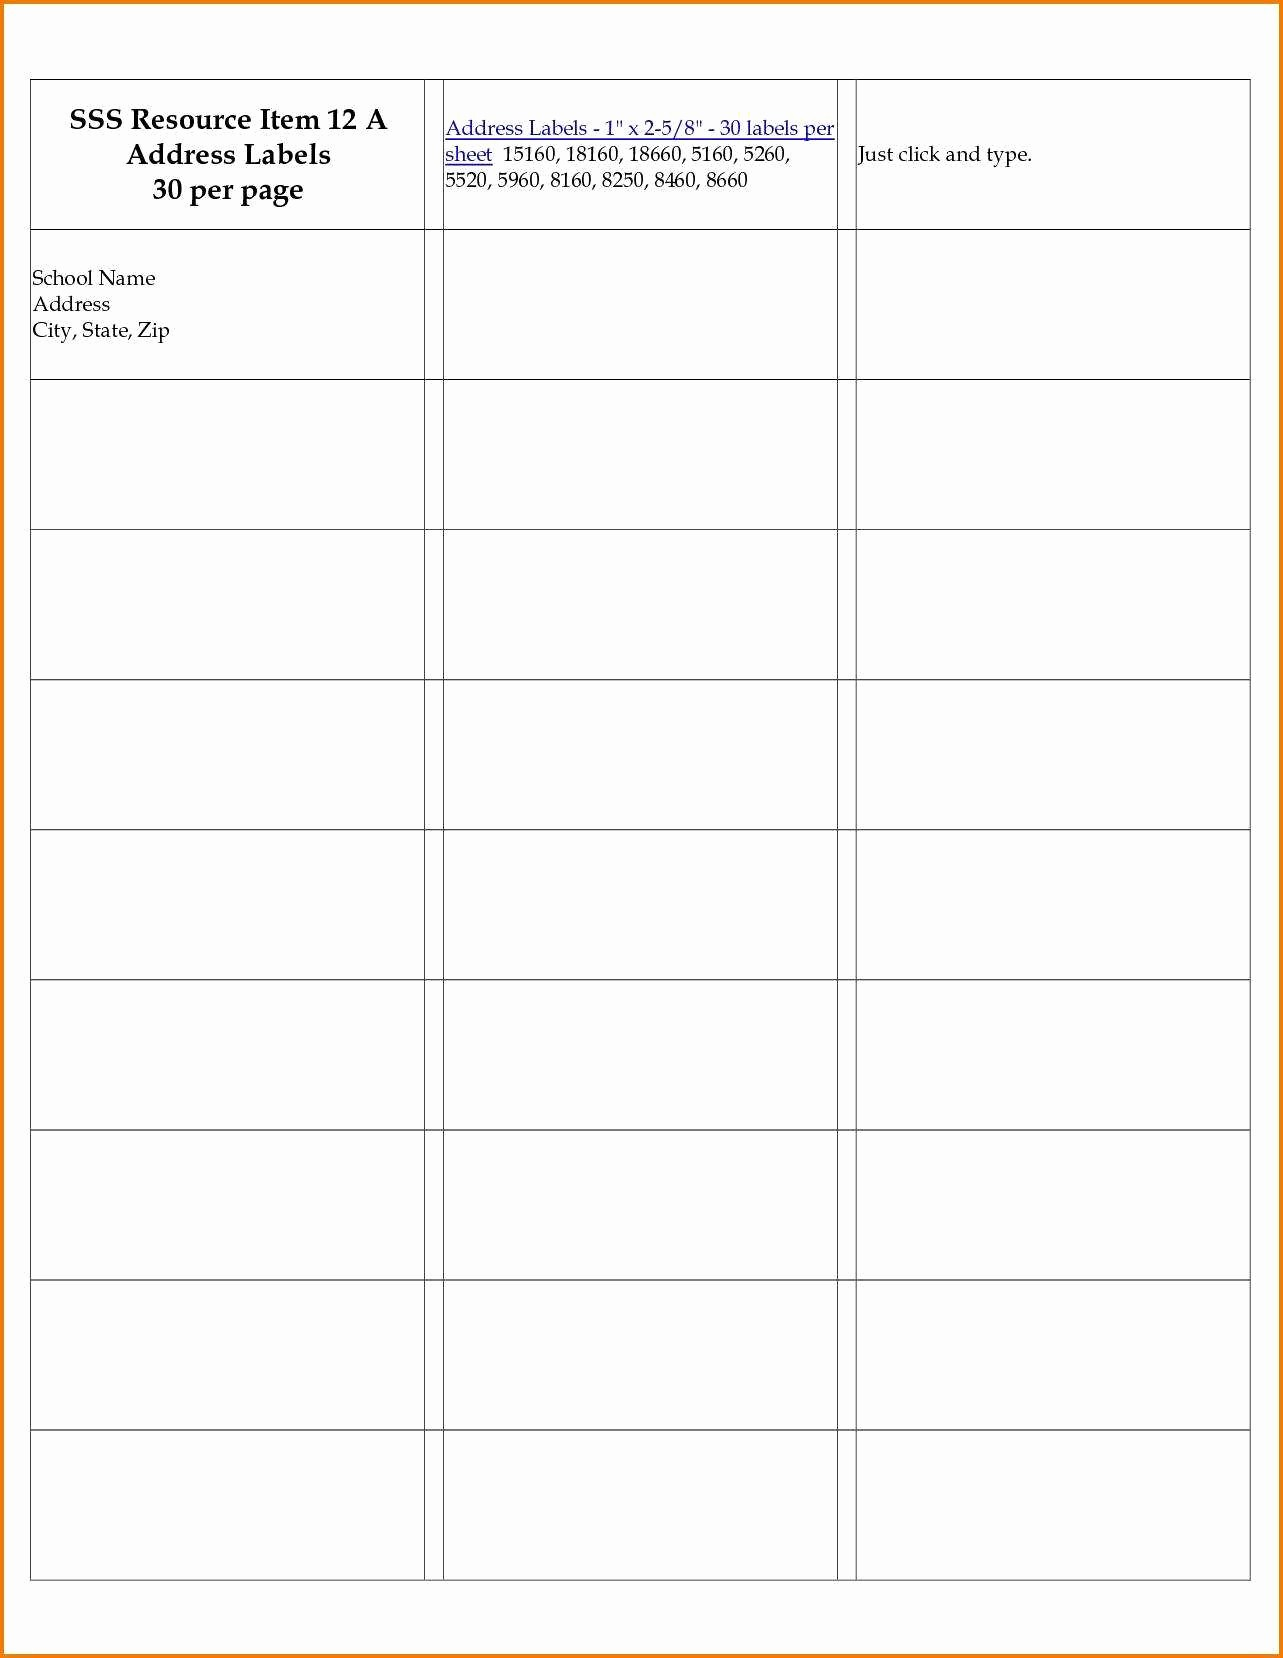 10 Per Sheet Label Template Inspirational 2 X 4 Label Template 10 Per Sheet Excel